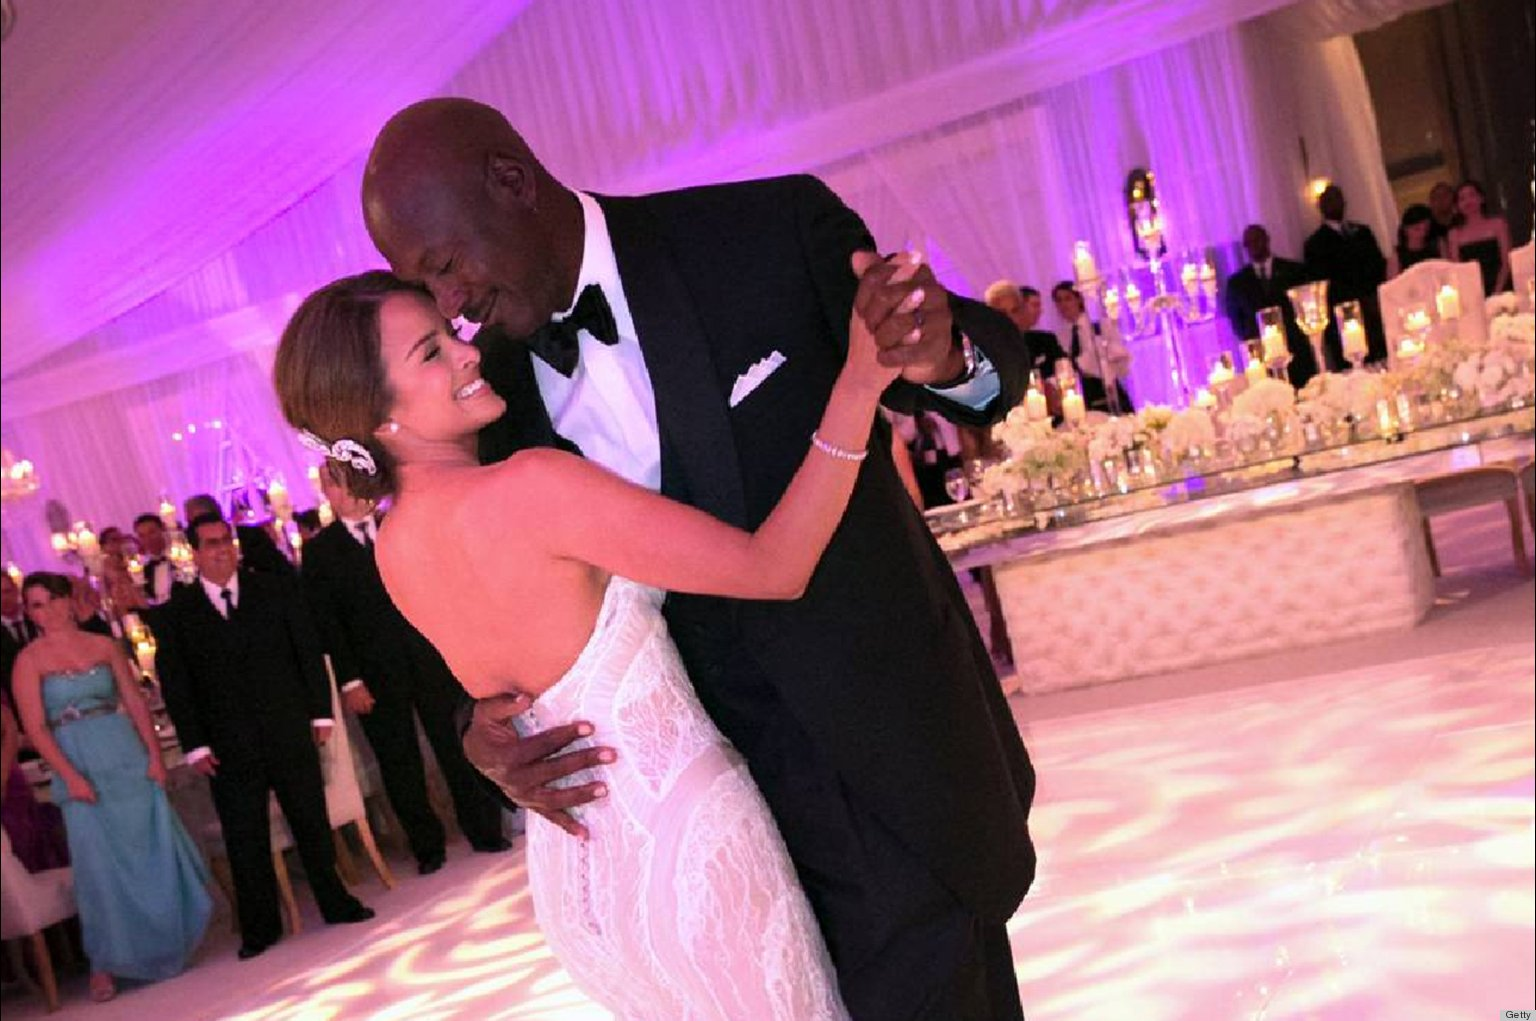 Where Michael Jordan Could Store Those Wedding Gifts